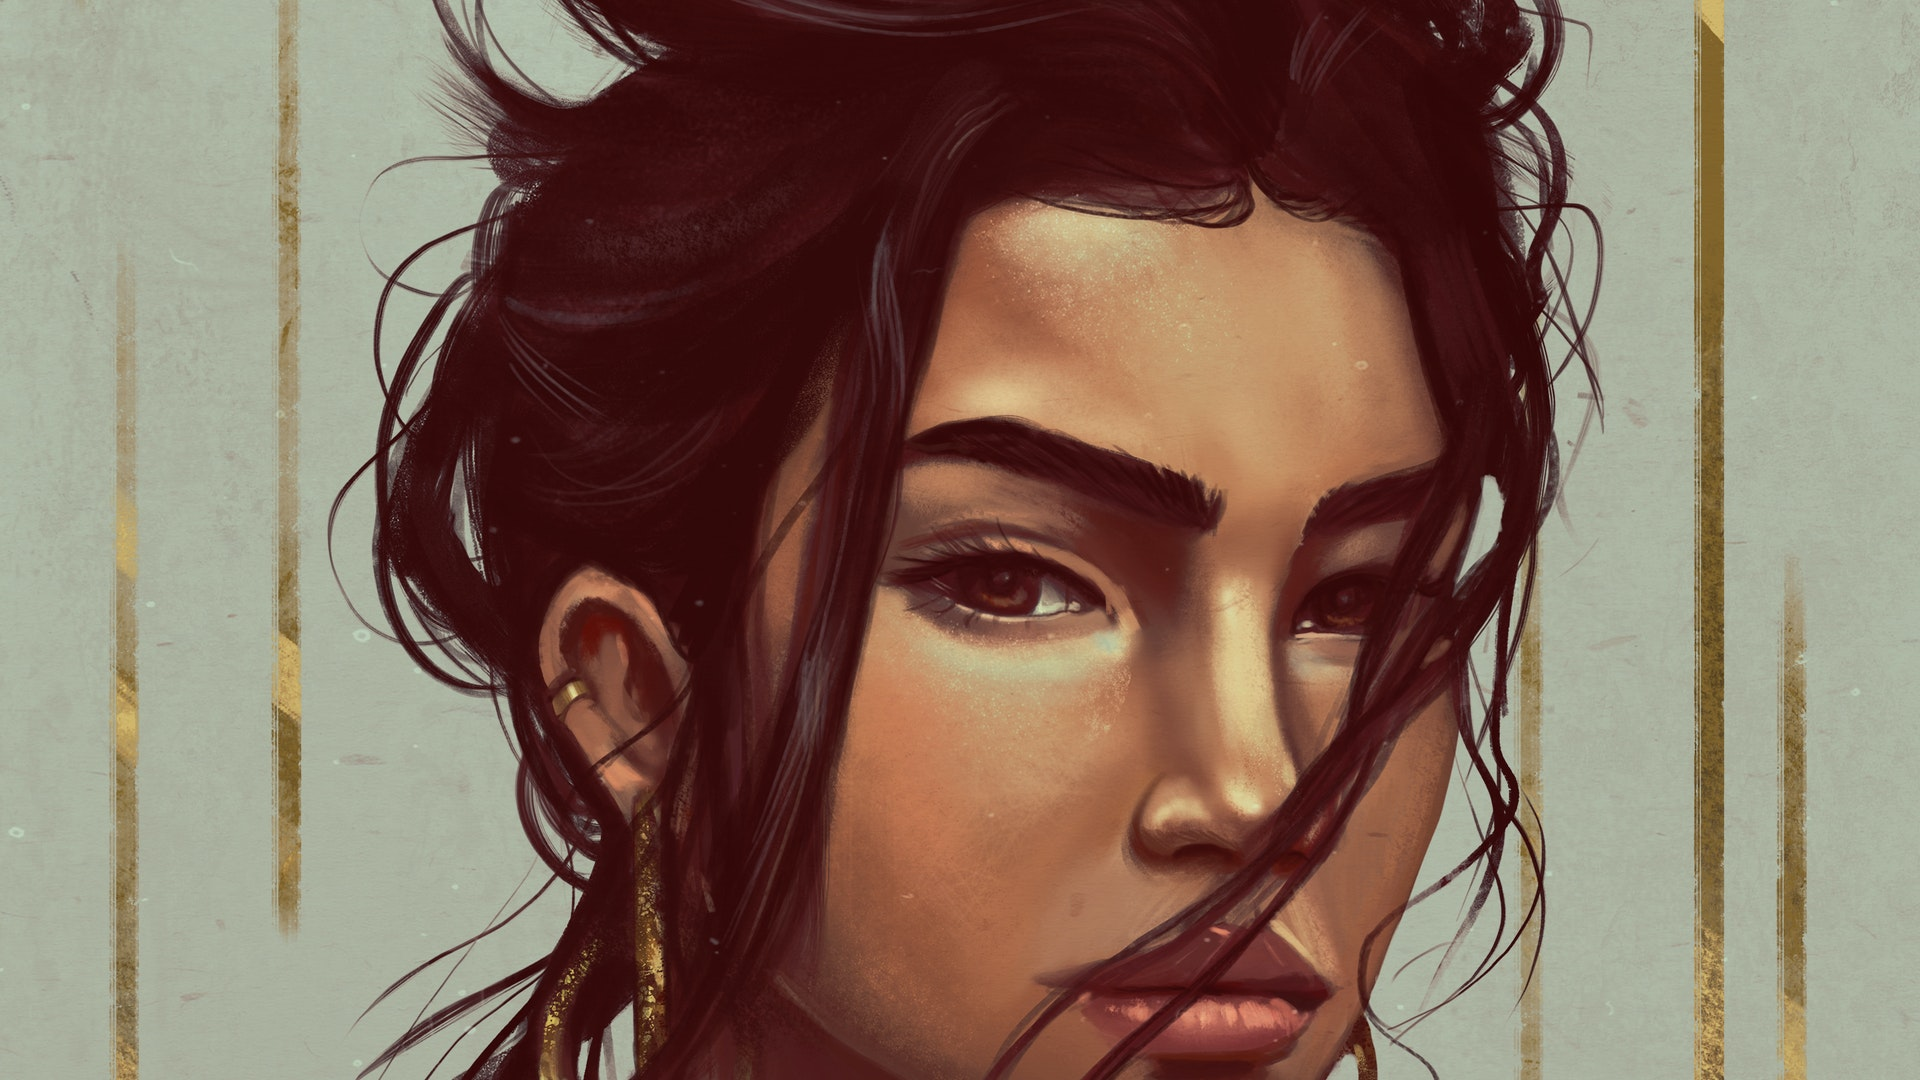 gIRL wITH GOLD EARINGS2